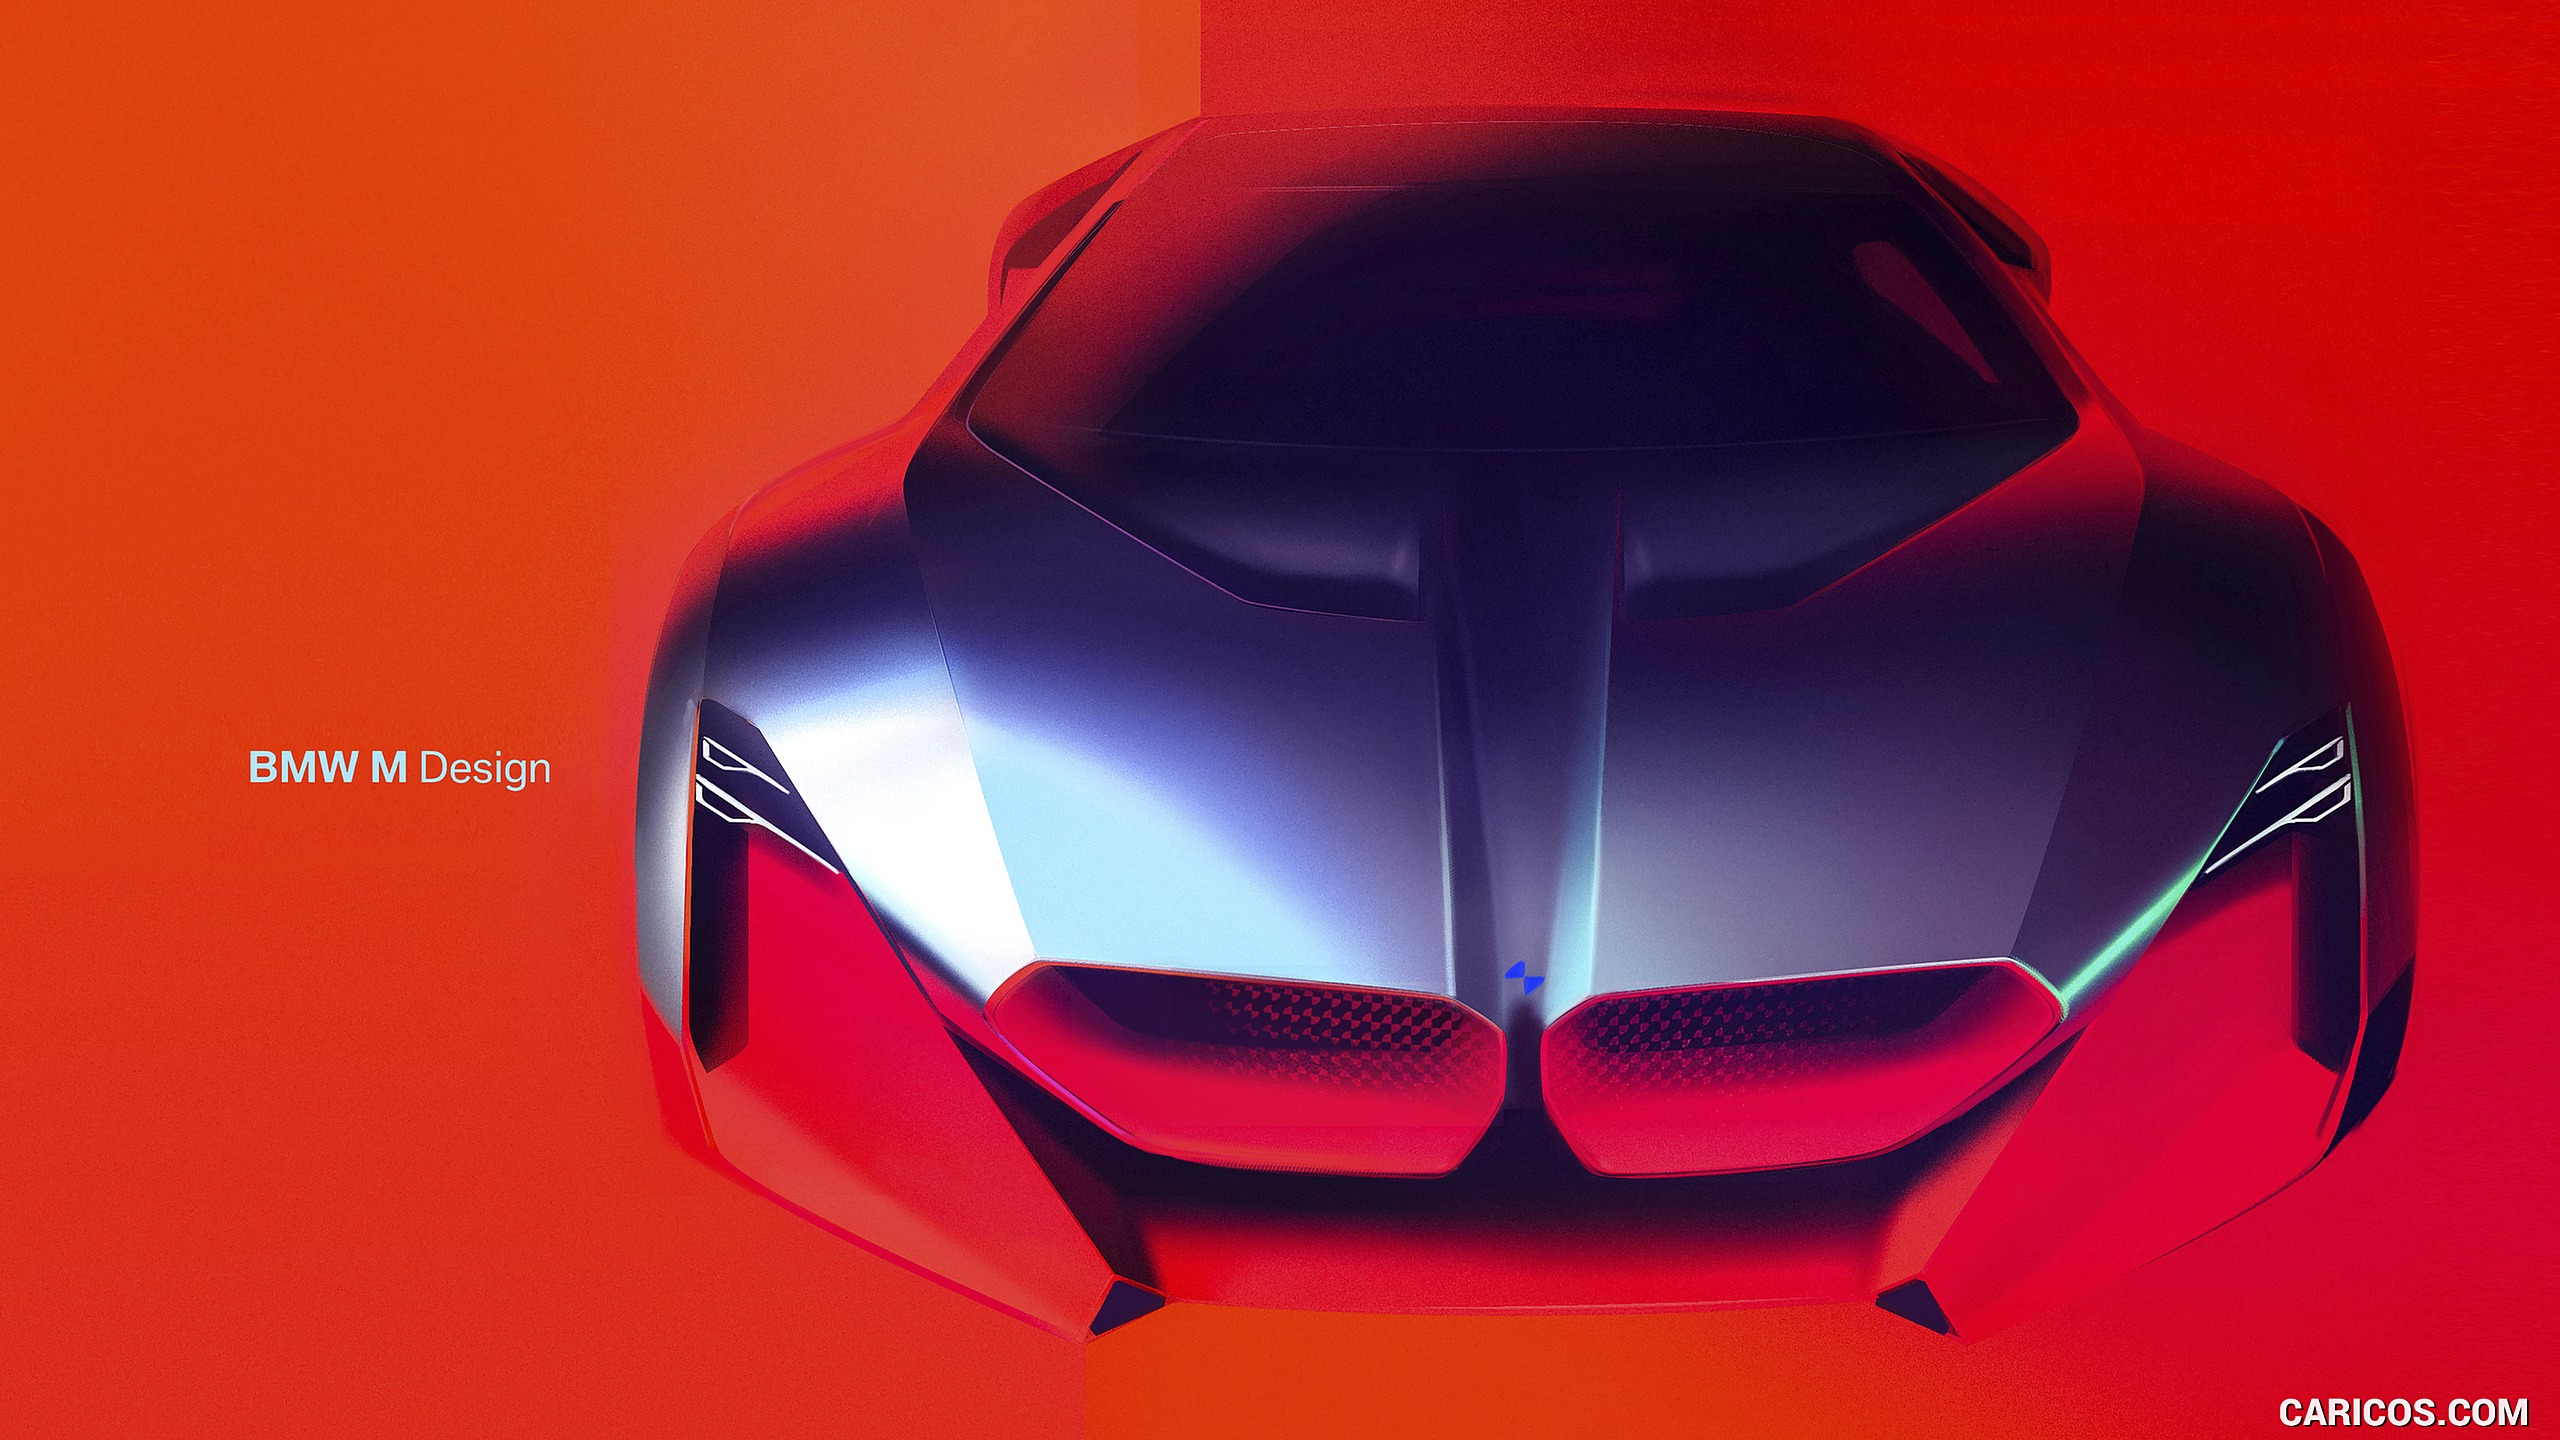 2019 BMW Vision M Next   Design Sketch HD Wallpaper 63 2560x1440